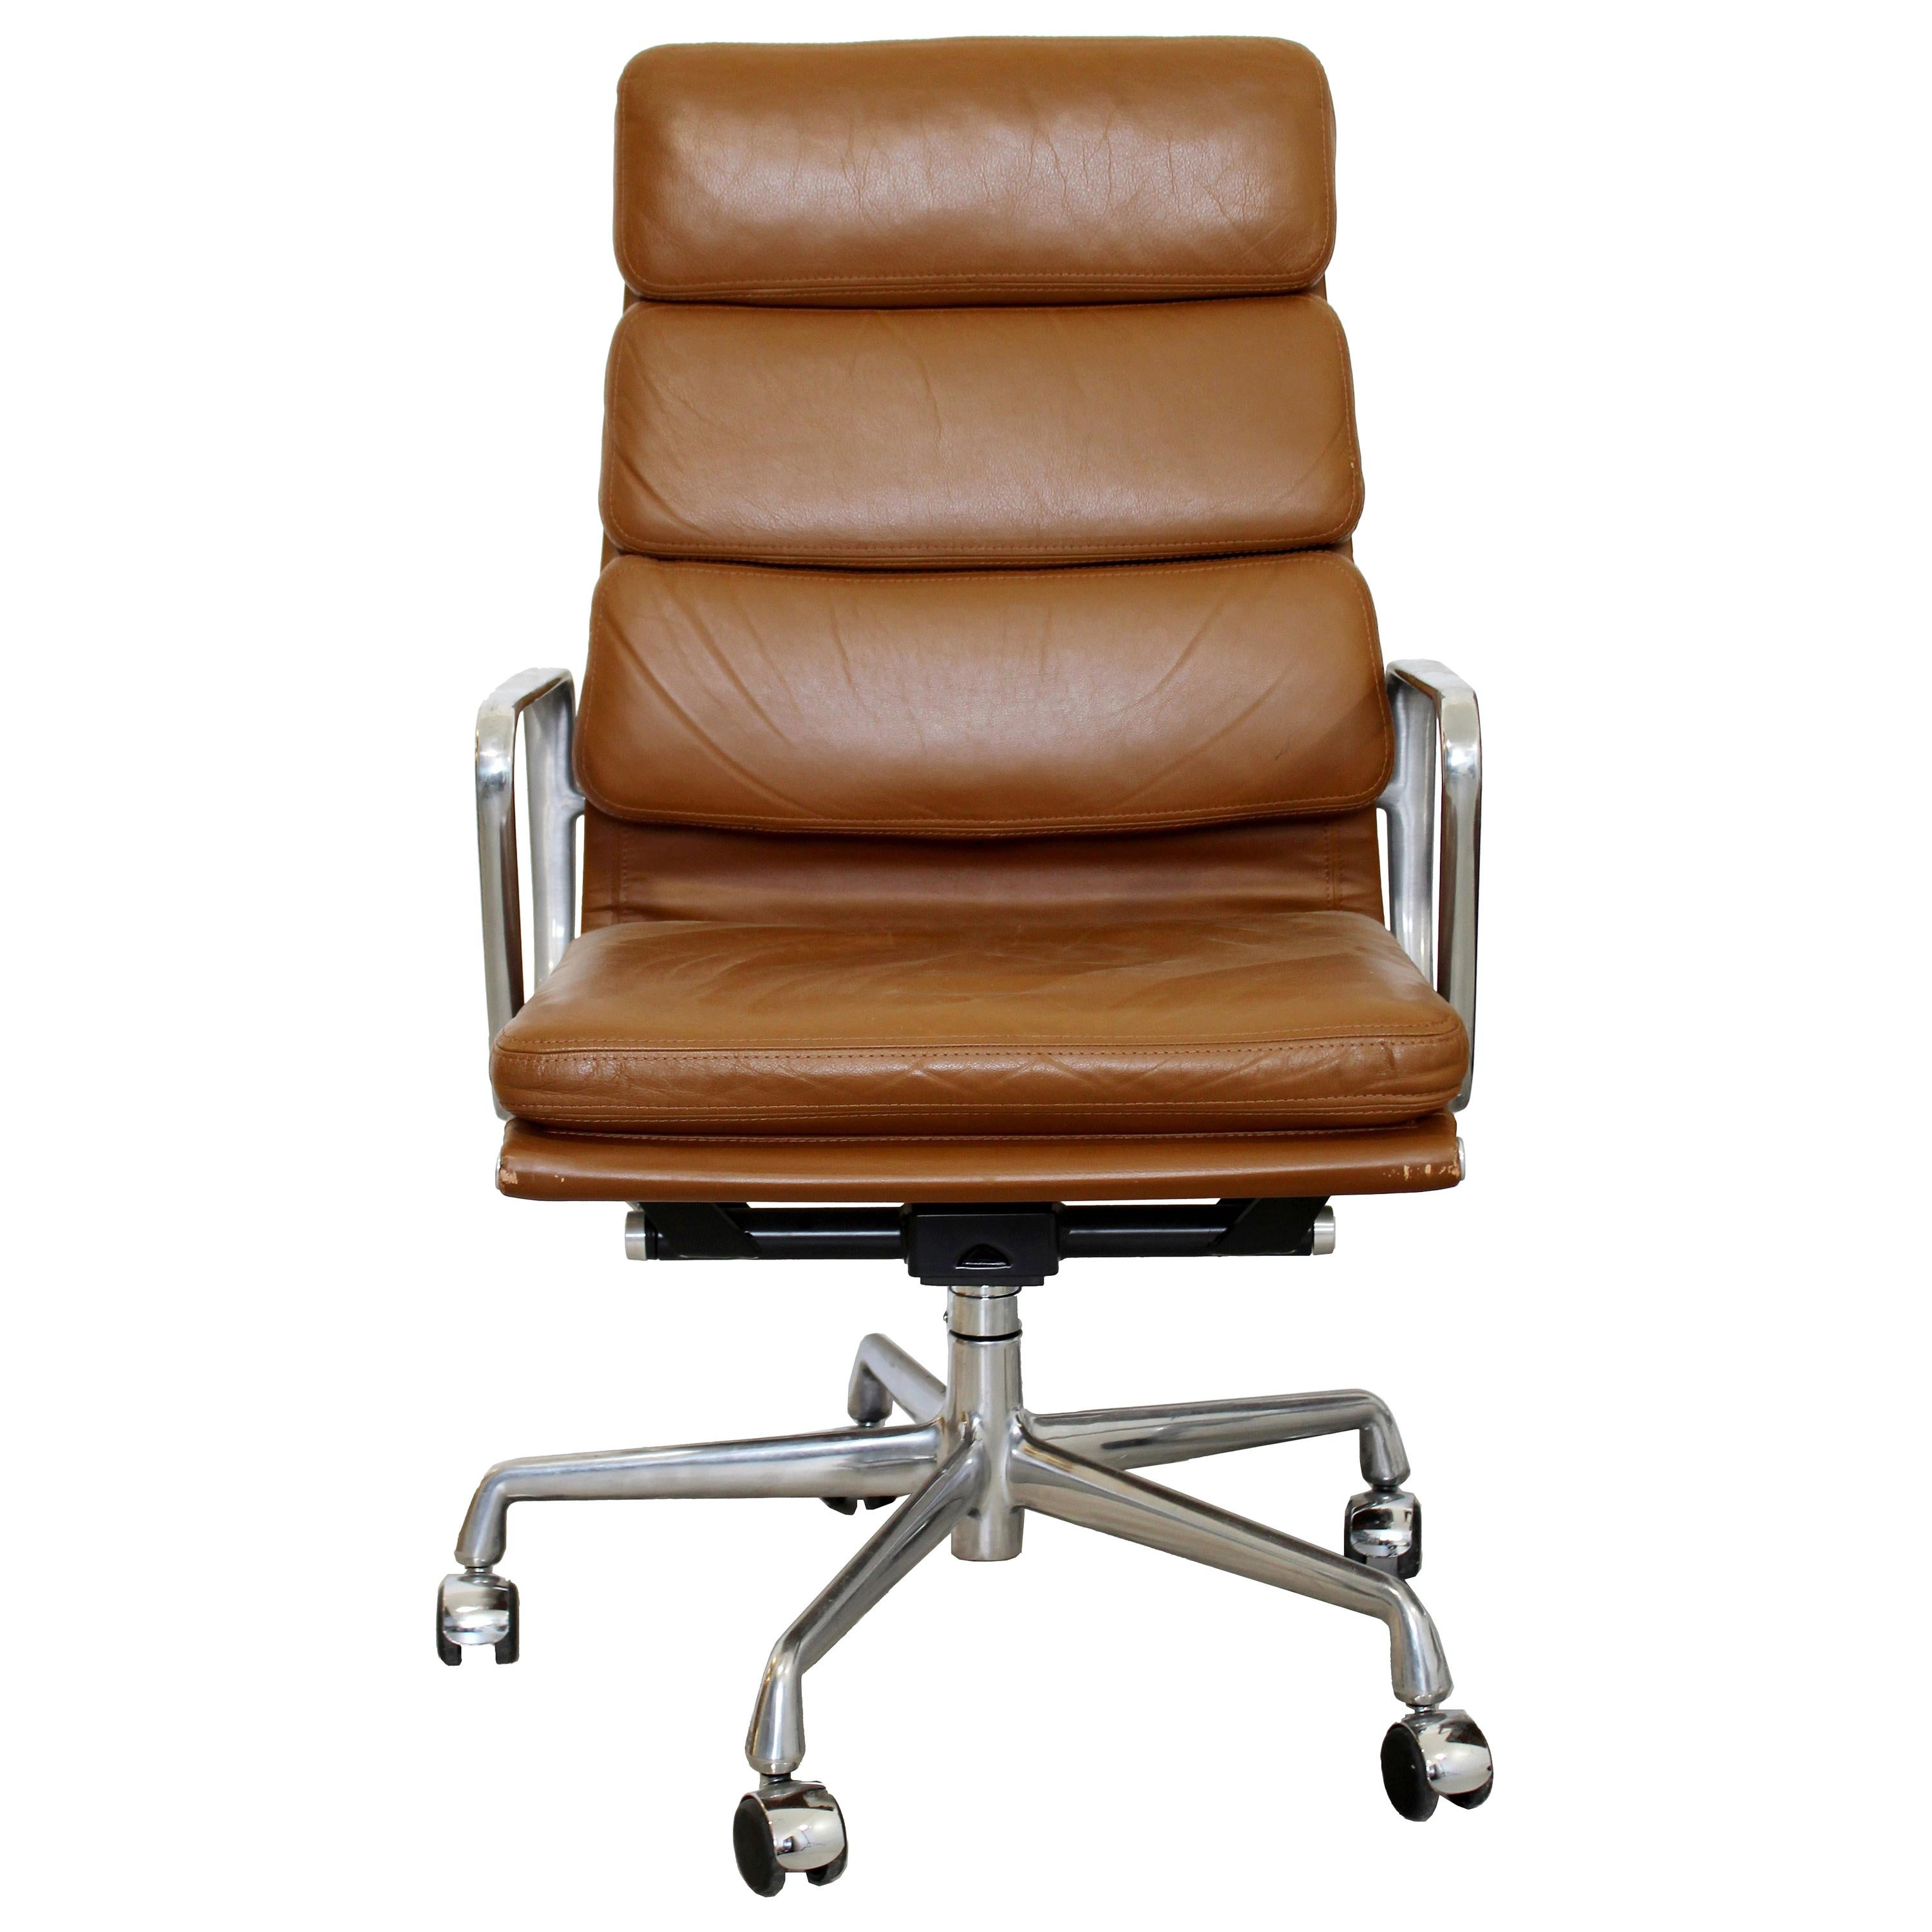 Contemporary Modernist Eames for Herman Miller Rolling Office Chair Leather